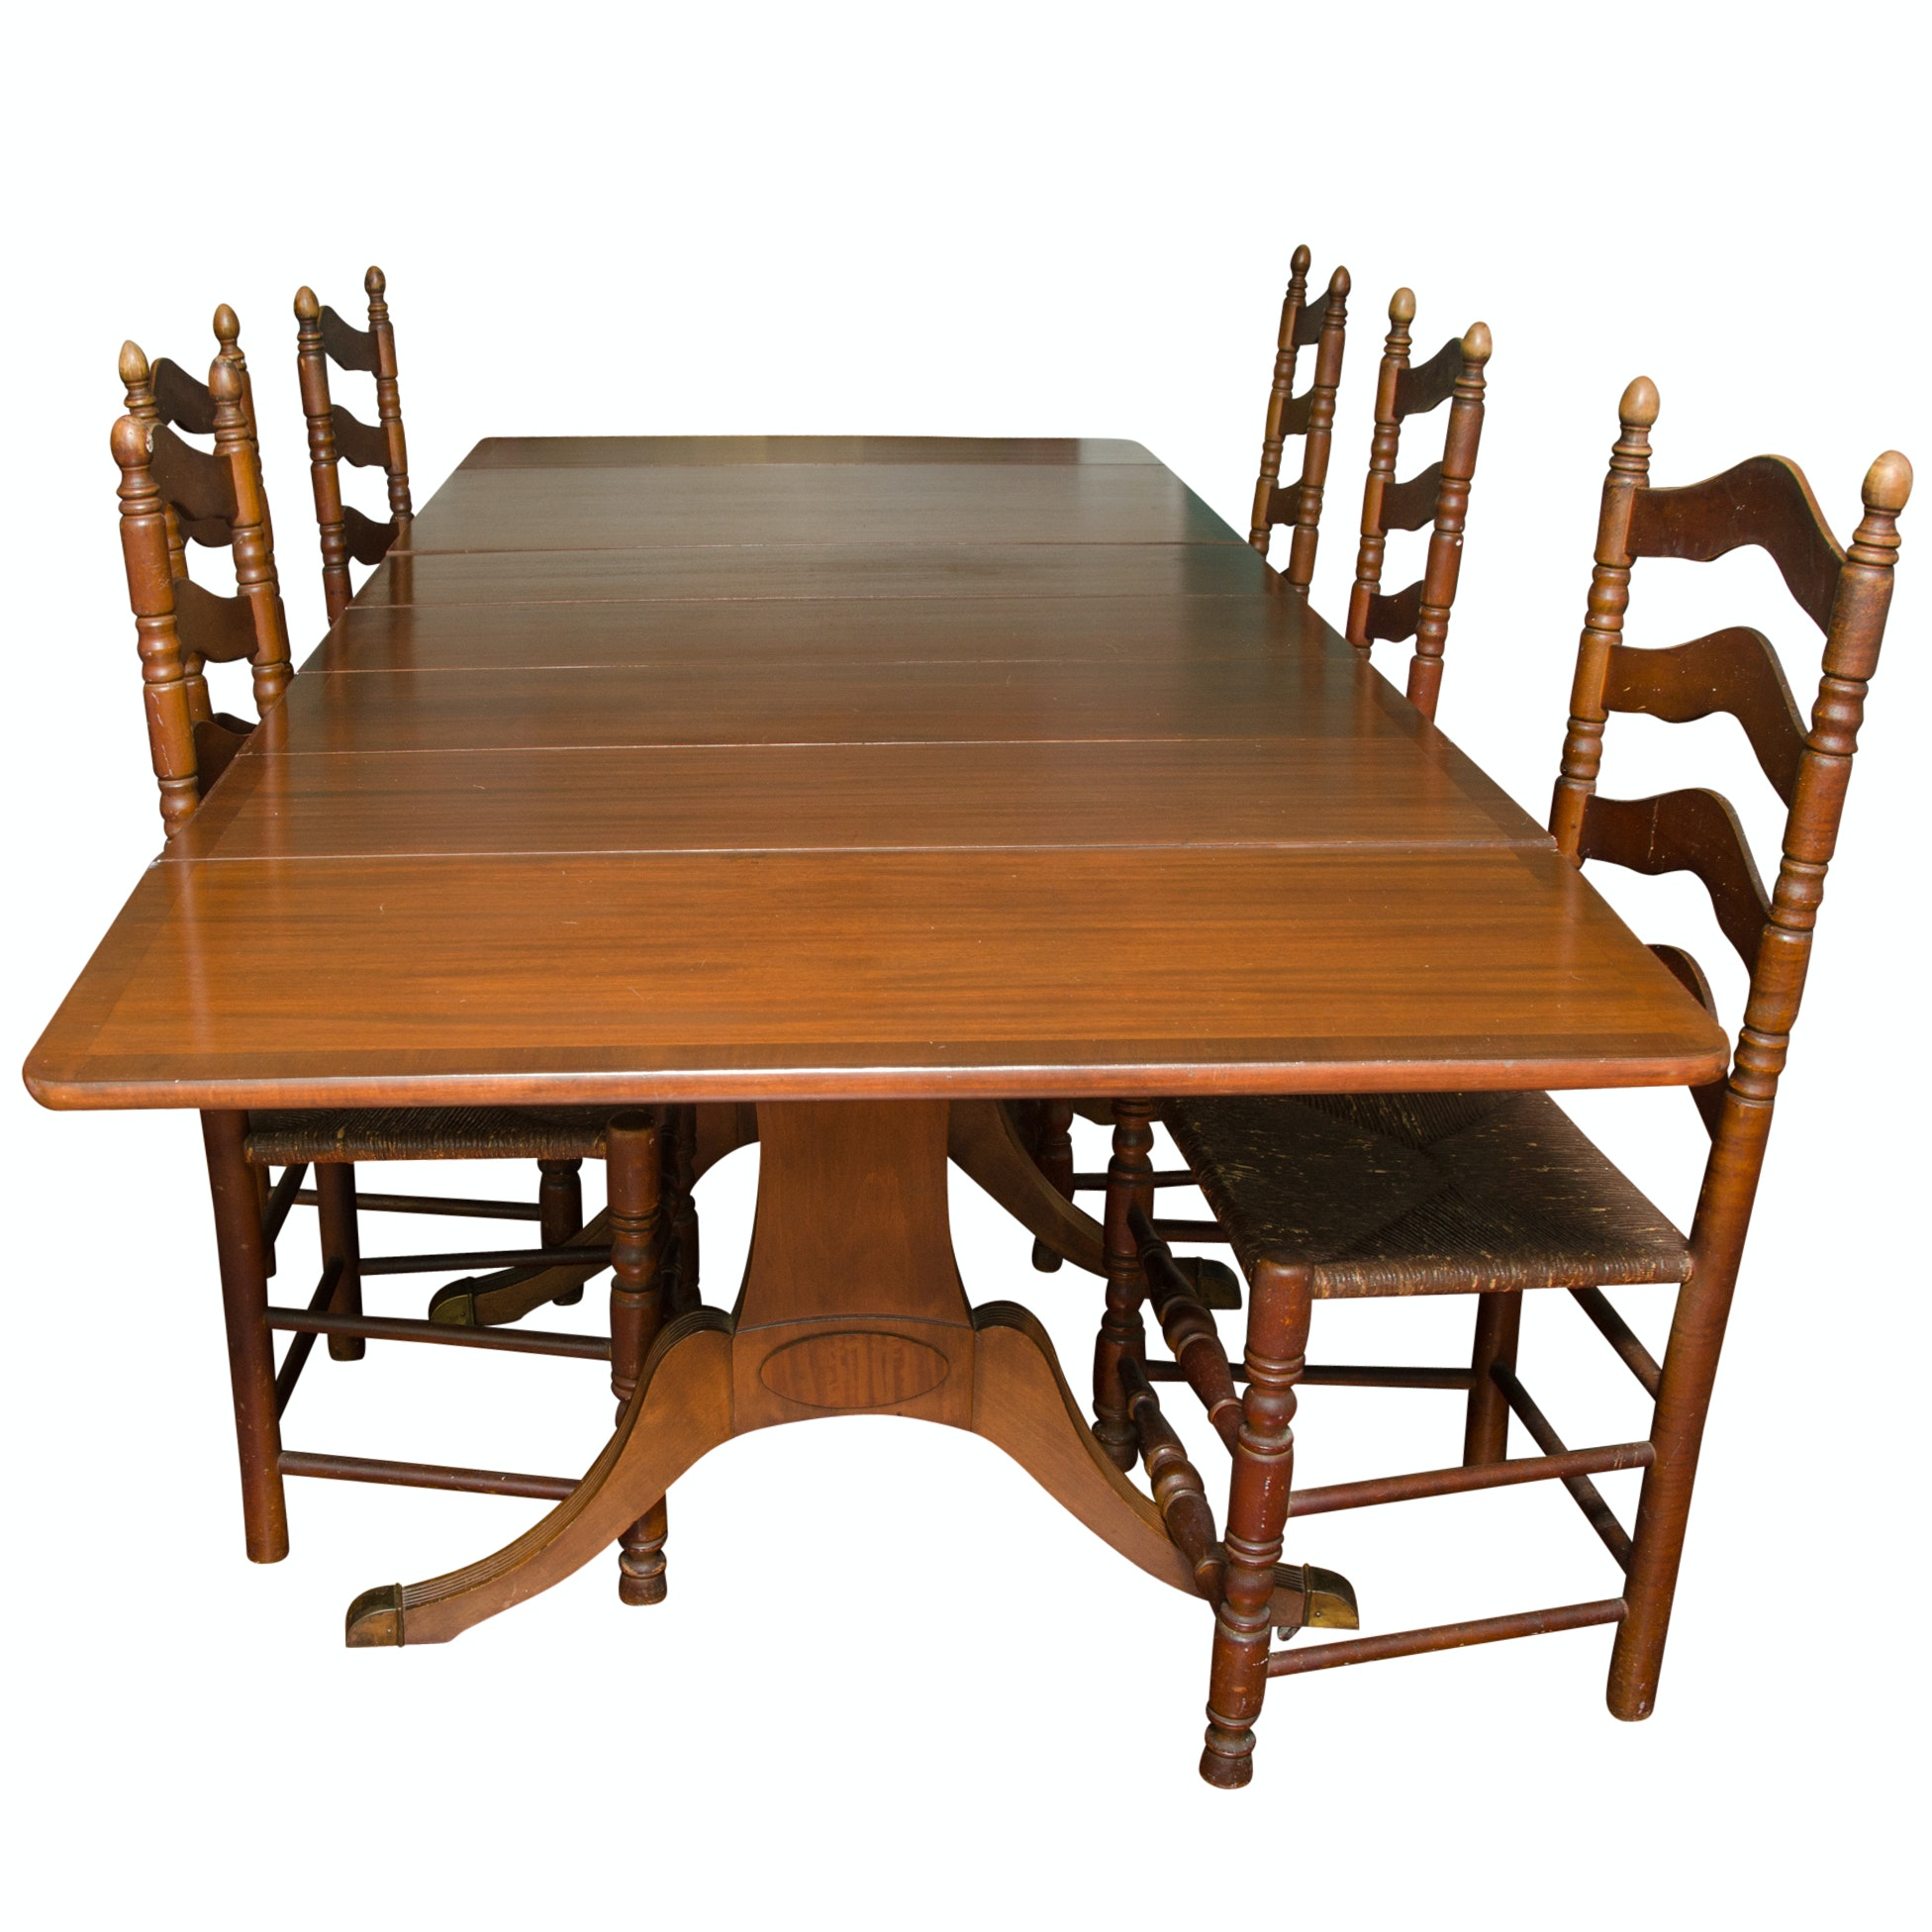 Watertown Slide-Table Drop Leaf Dining Table With Leaves and Ladderback Chairs